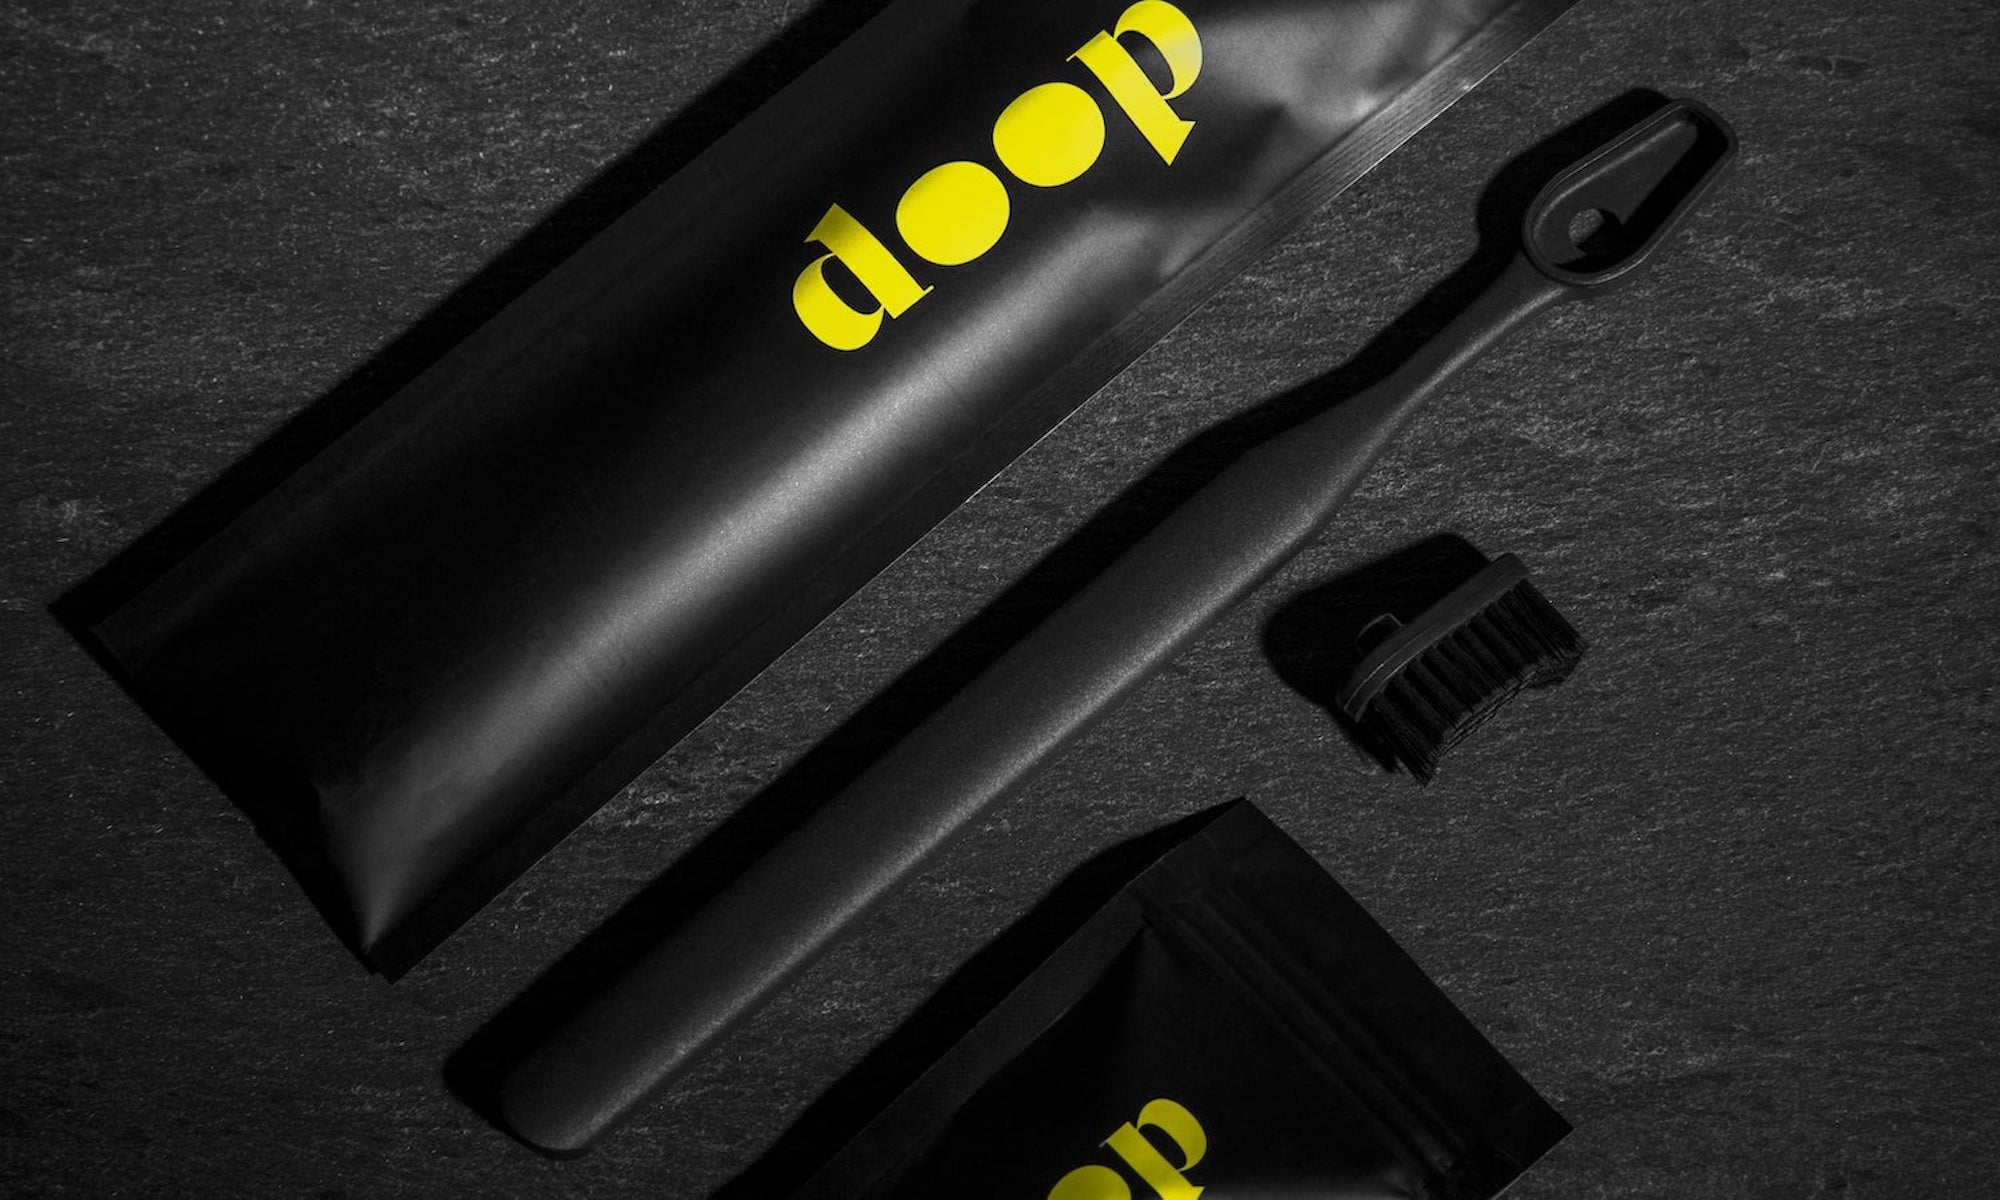 Doop head-removable & washable toothbrush